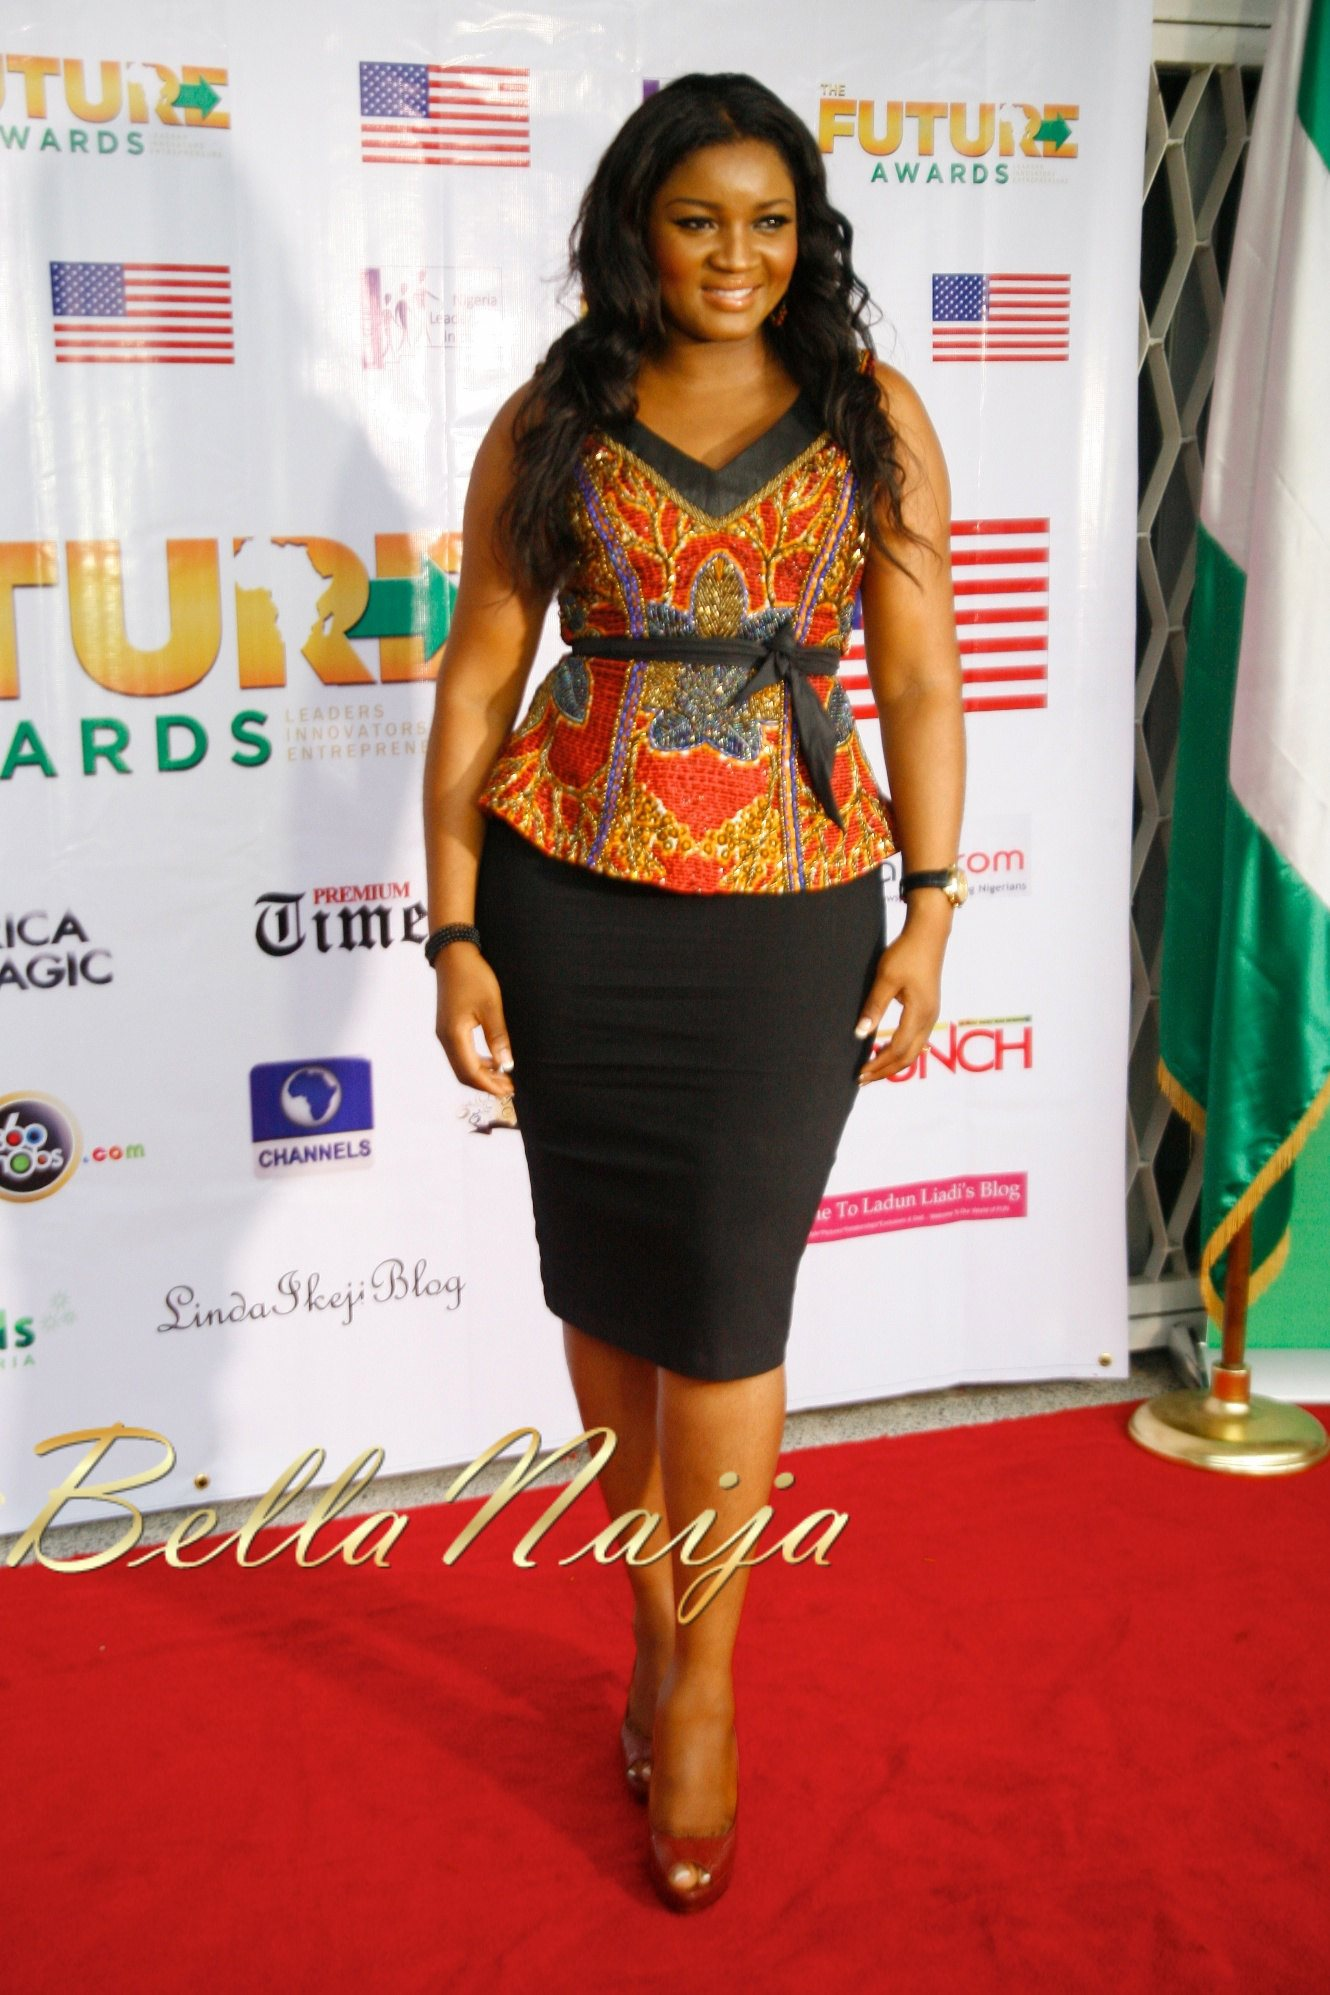 What   s Your Take on Omotola Jalade-Ekeinde   s Look at the 2013    Omotola Jalade Ekeinde 2014